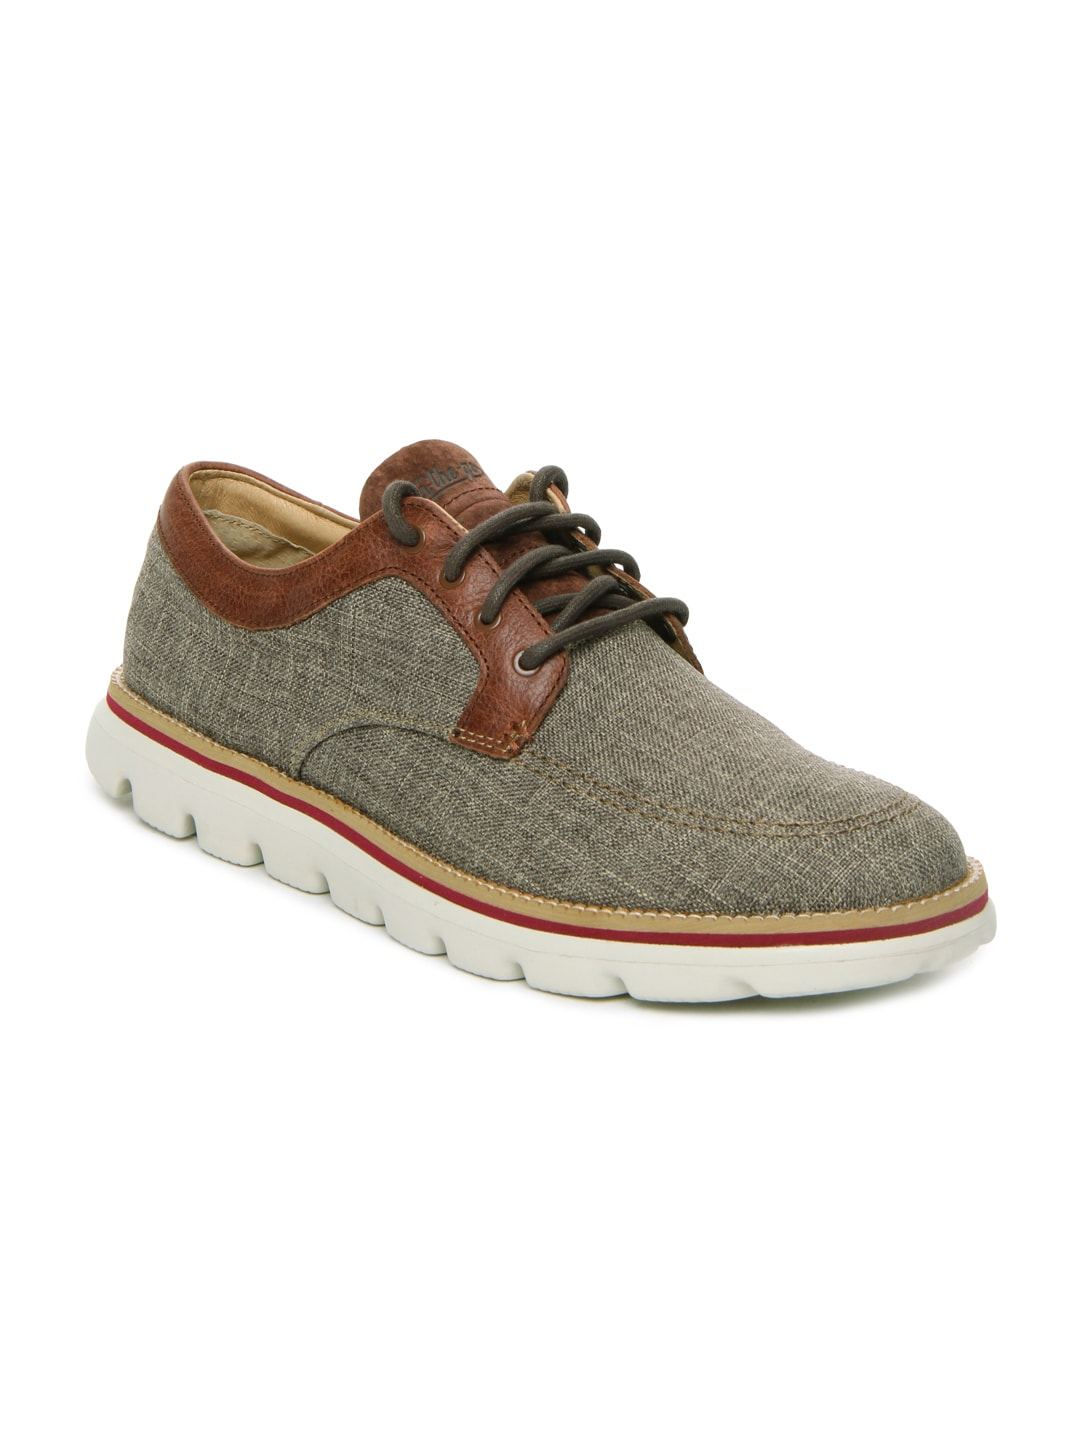 460c1aa5bbe3 skechers shoes mens brown for sale   OFF48% Discounts